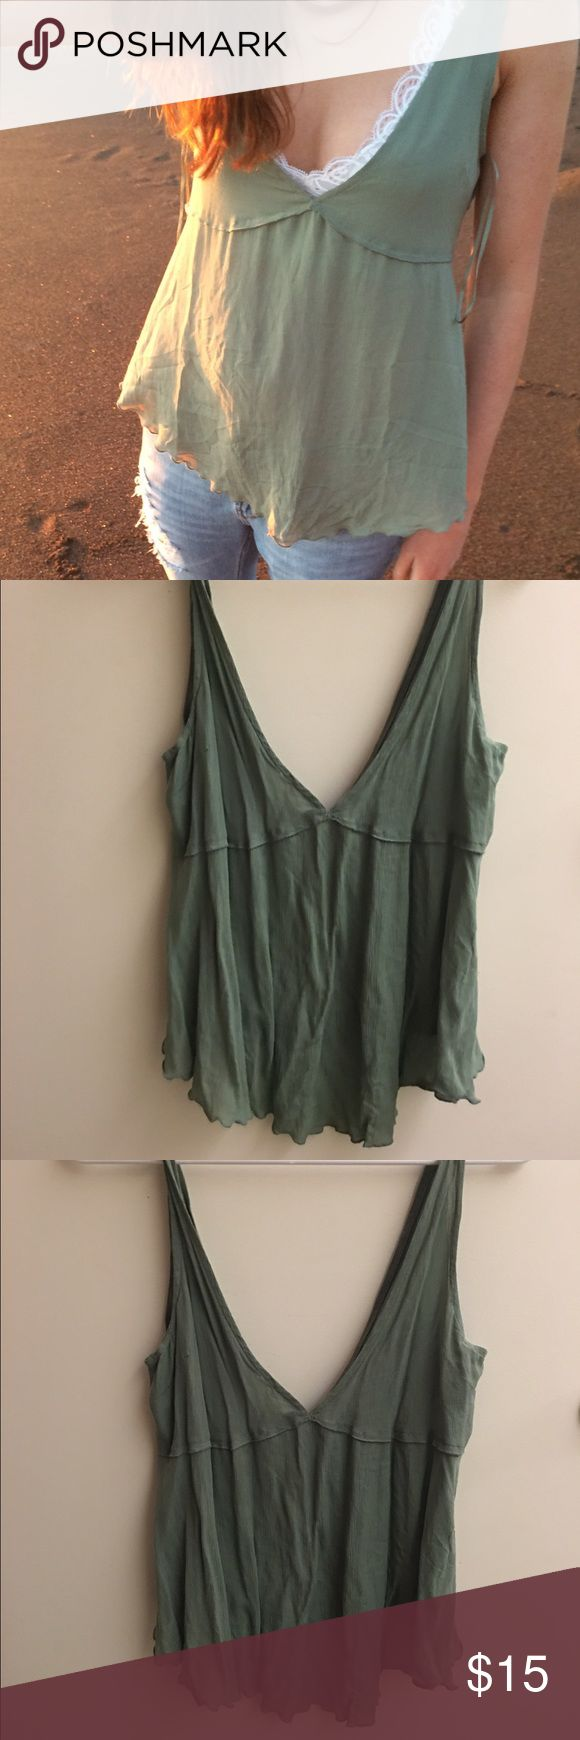 Free People Green V-Cut Tank Top Free People green, v-cut flowy tank top. Perfect for the spring/summer and for layering. Very cute and in great condition! Free People Tops Tank Tops